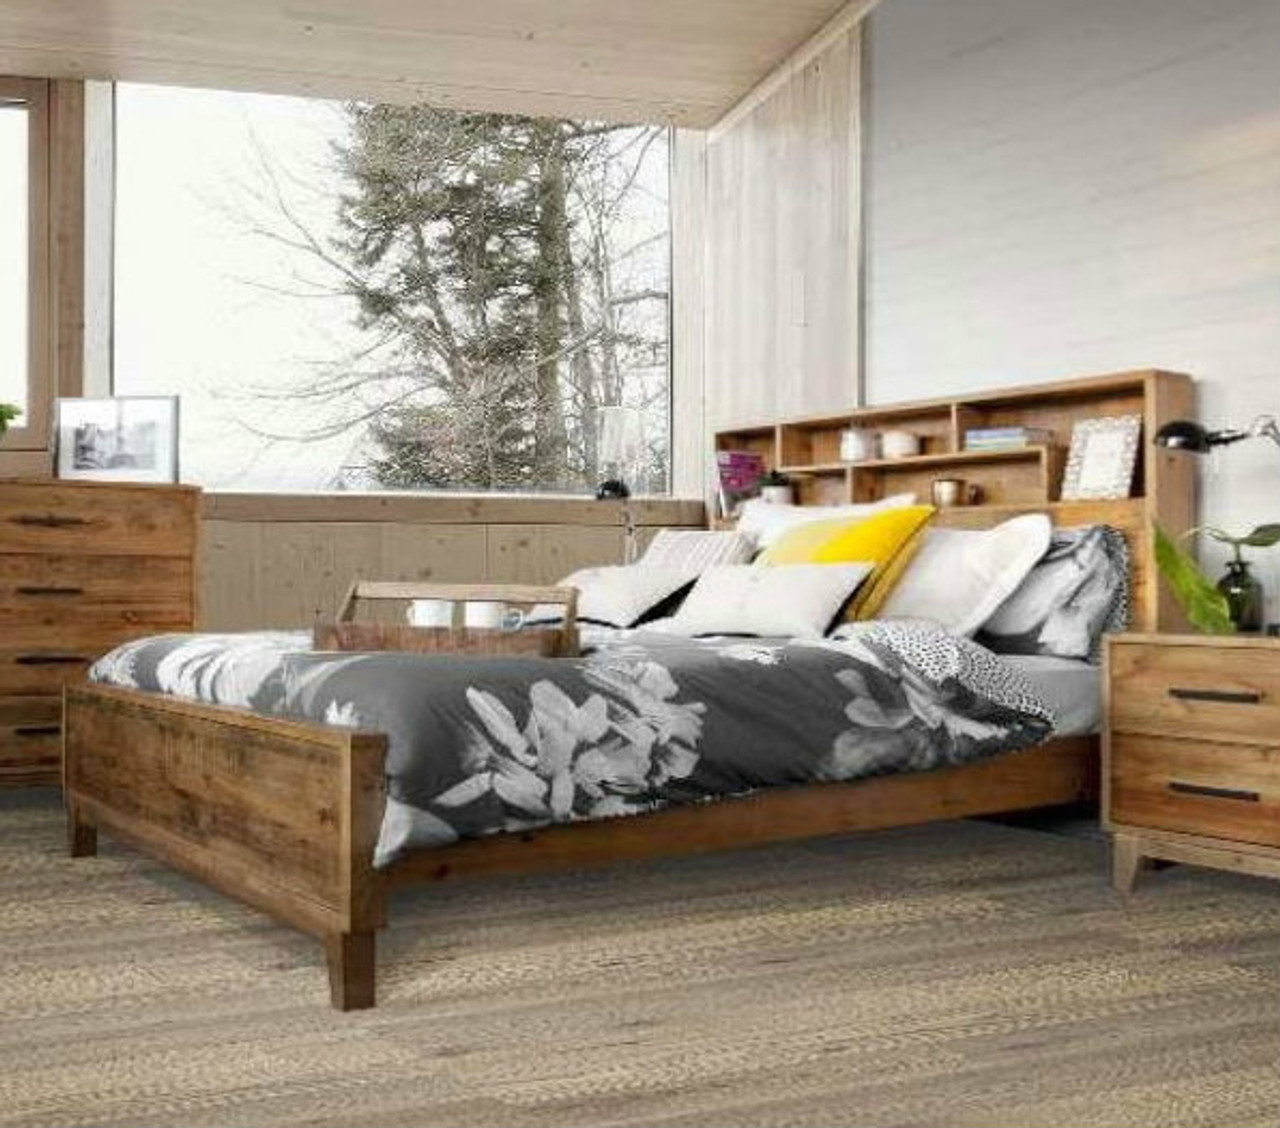 Queen Antarctica Bed With Bookcase Storage Headboard Rustic My Furniture Store Furniture And Bedding Super Store Australia